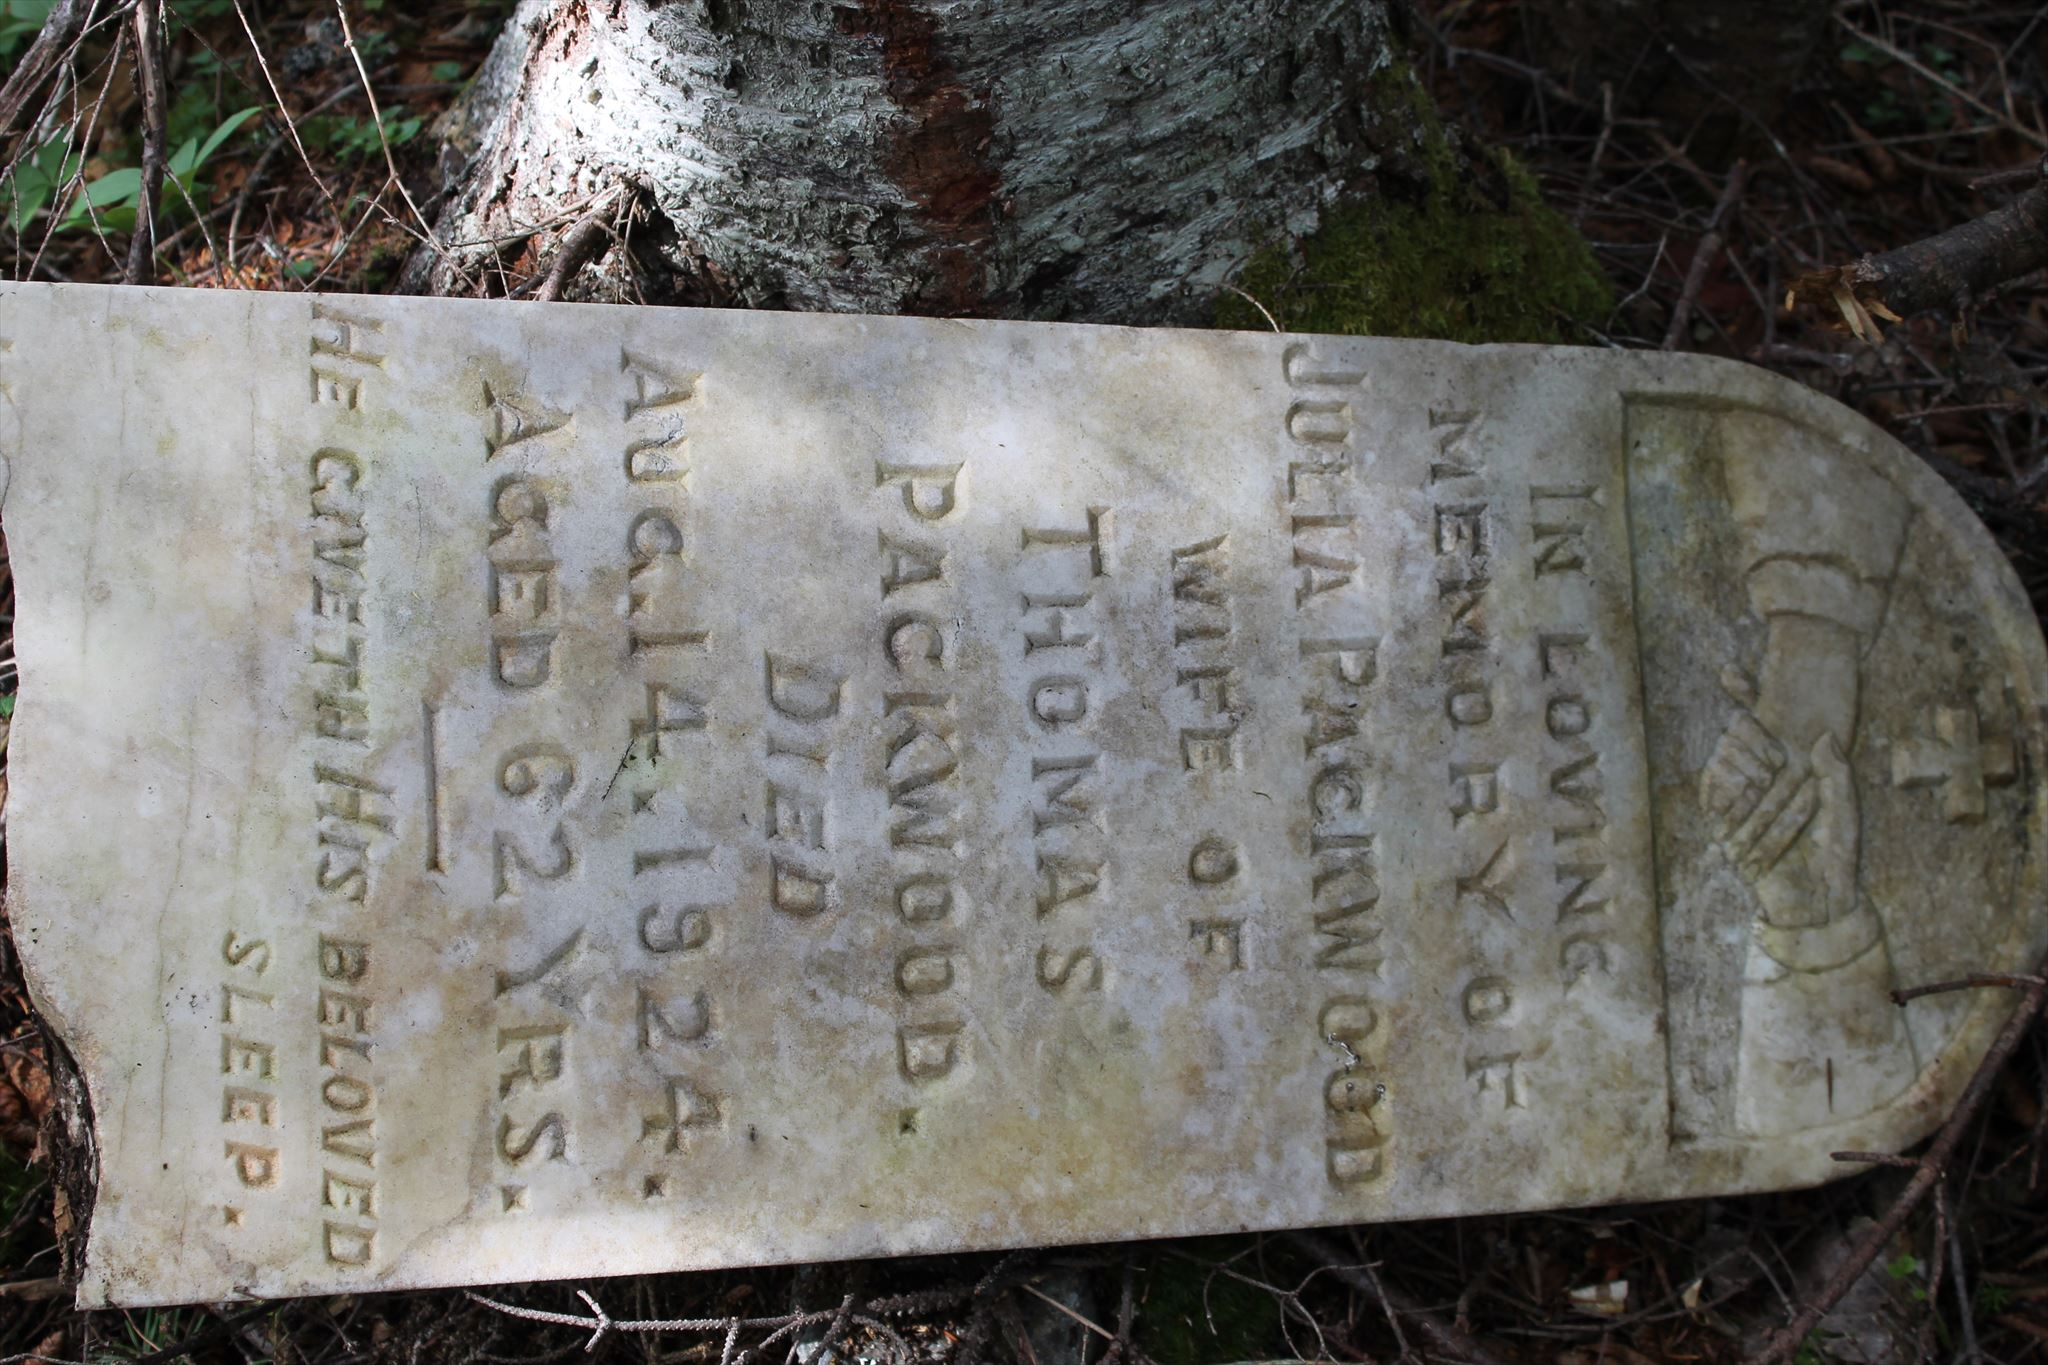 An example of a fallen headstone